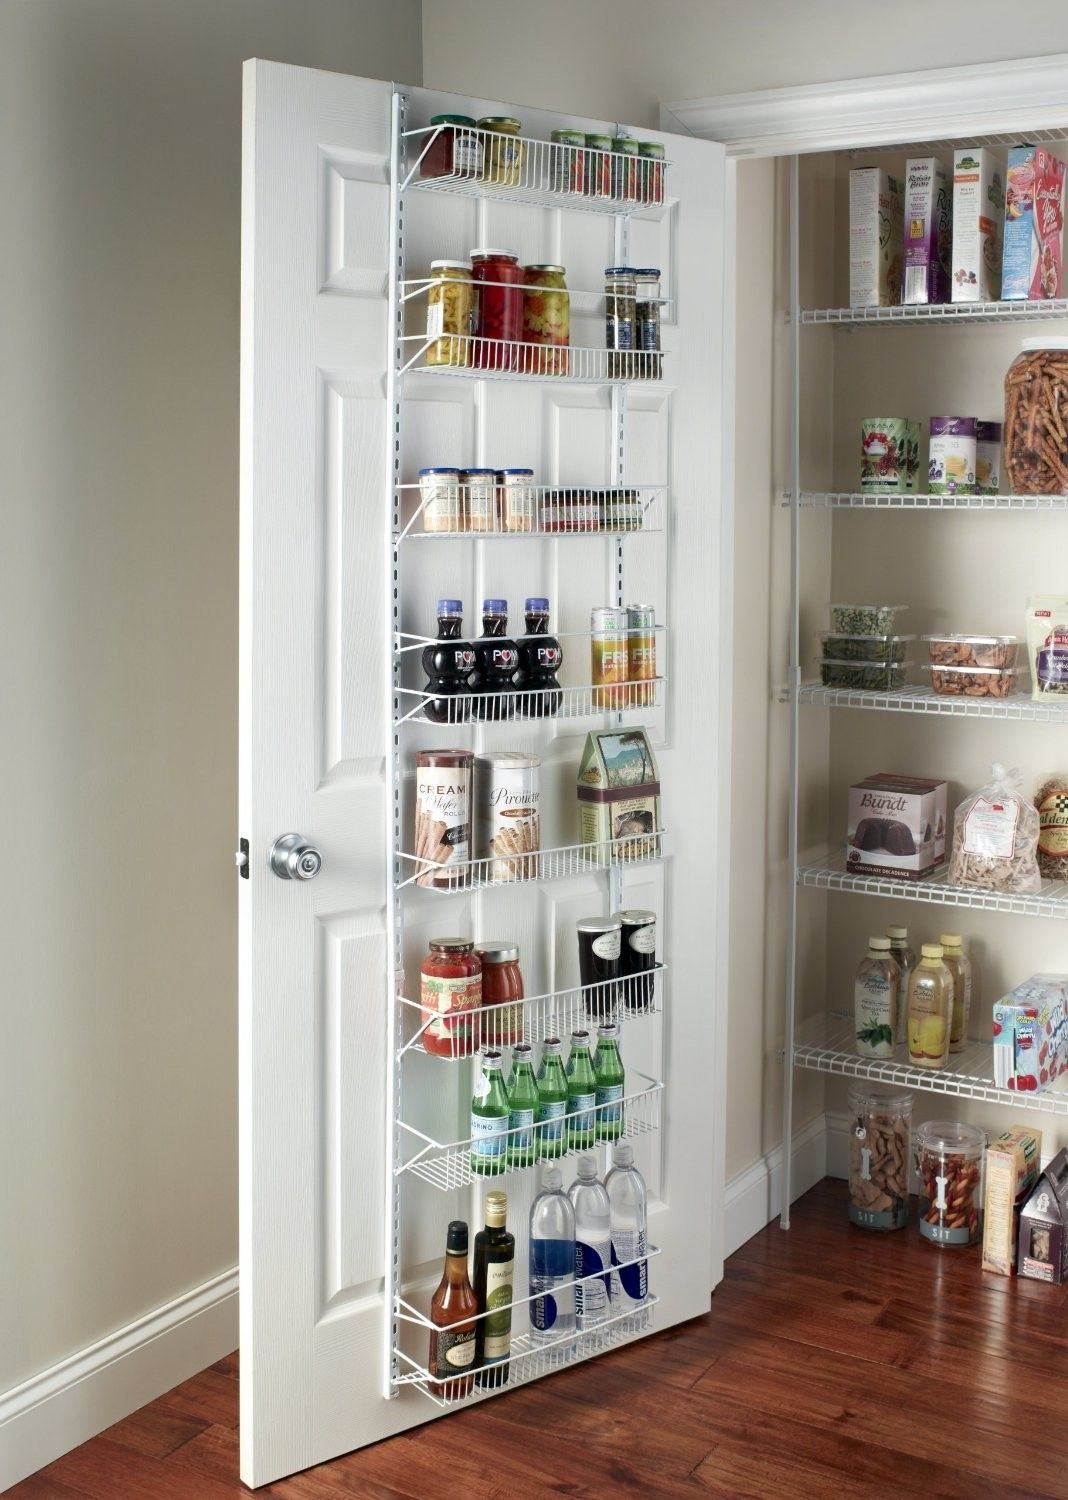 This Over Linen Closet 8 Tier Adjustable Cabinet Door Organizer Kitchen Pantry Storage Pantry Storage Door Organizer